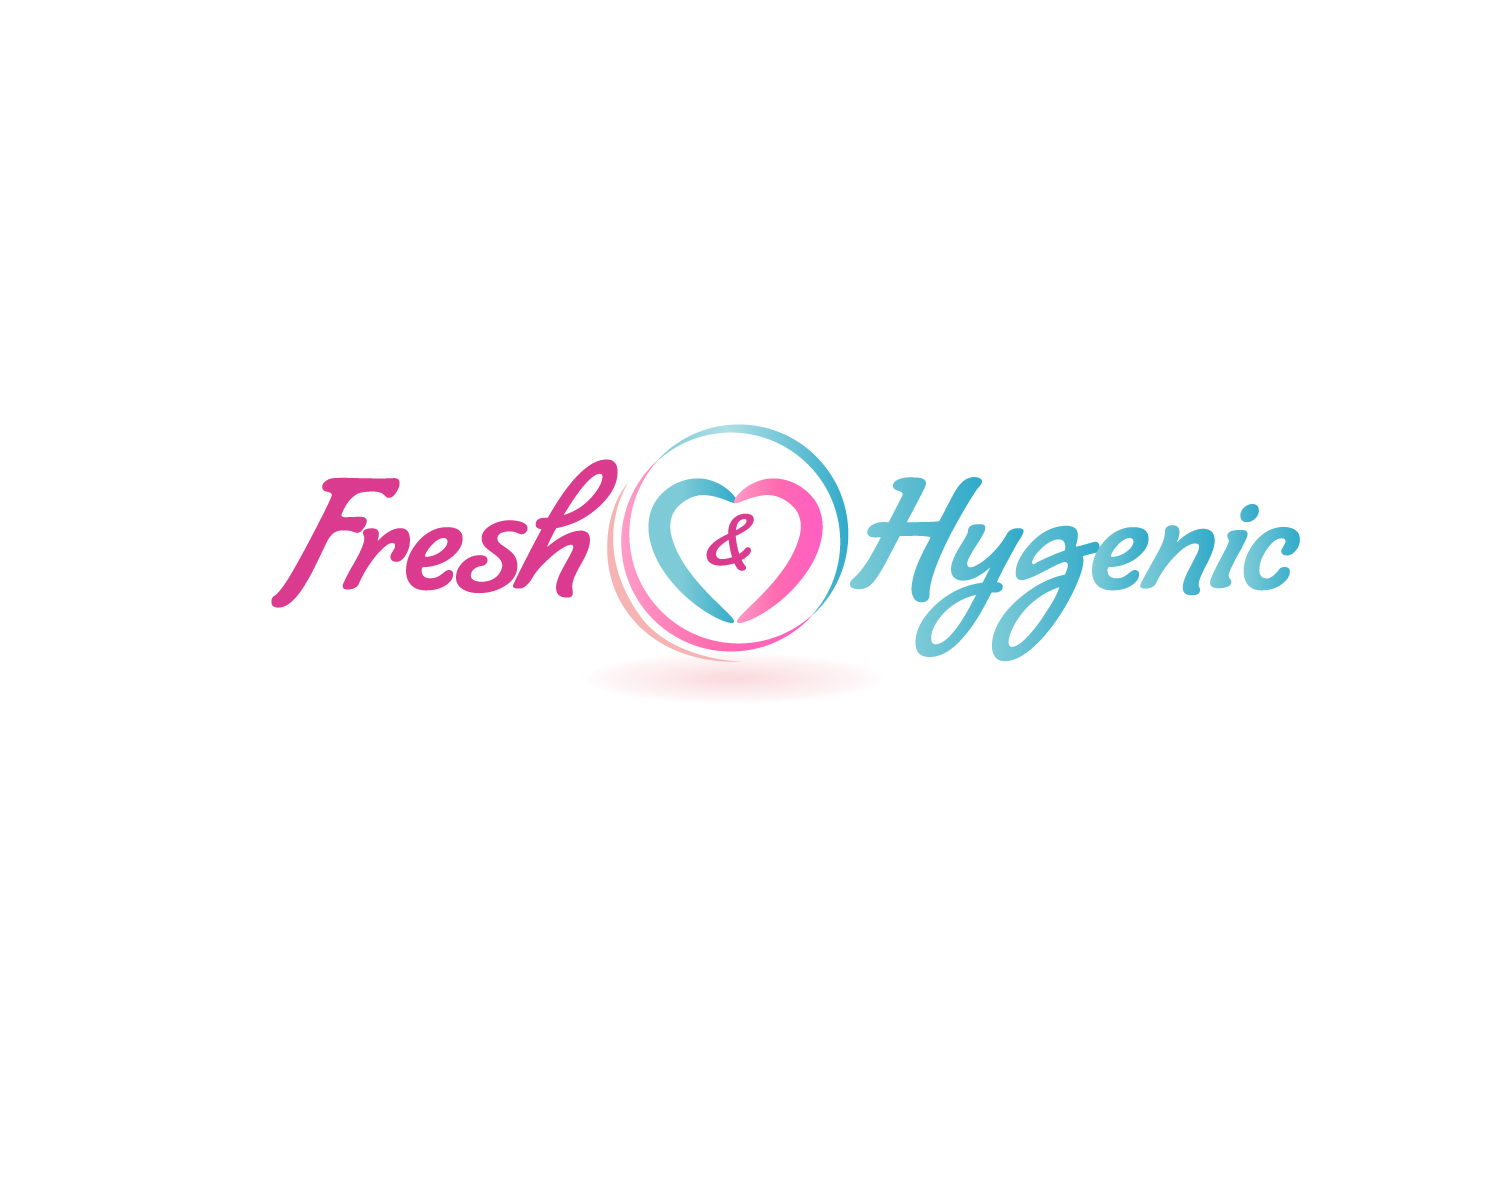 Logo Design by Jagdeep Singh - Entry No. 133 in the Logo Design Contest Fun Logo Design for Fresh & Hygenic.